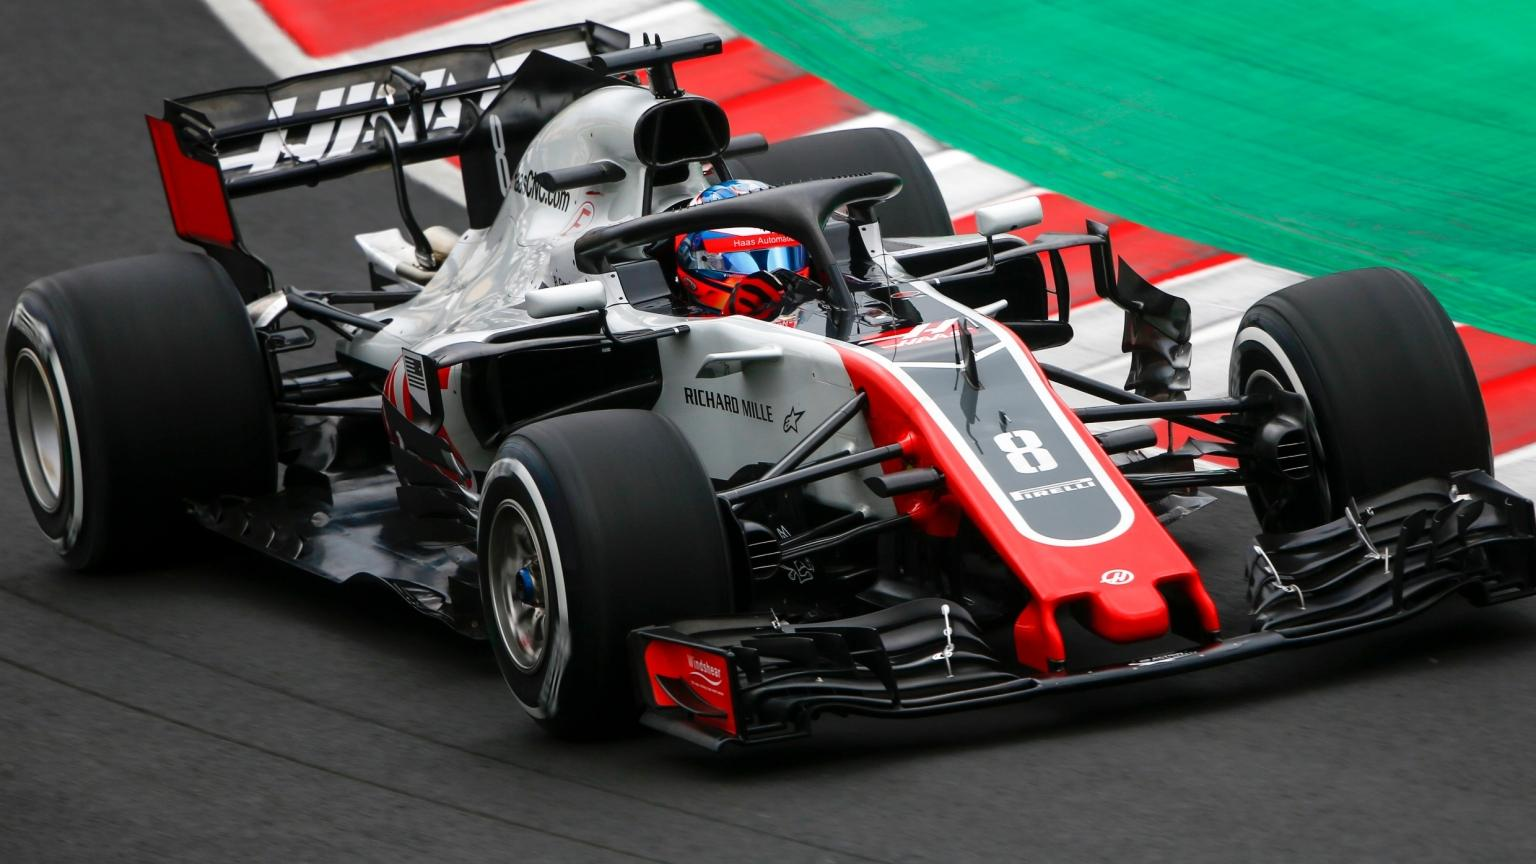 Haas Team2019 F1 Racer Wallpapers: F1 2019 Wallpapers